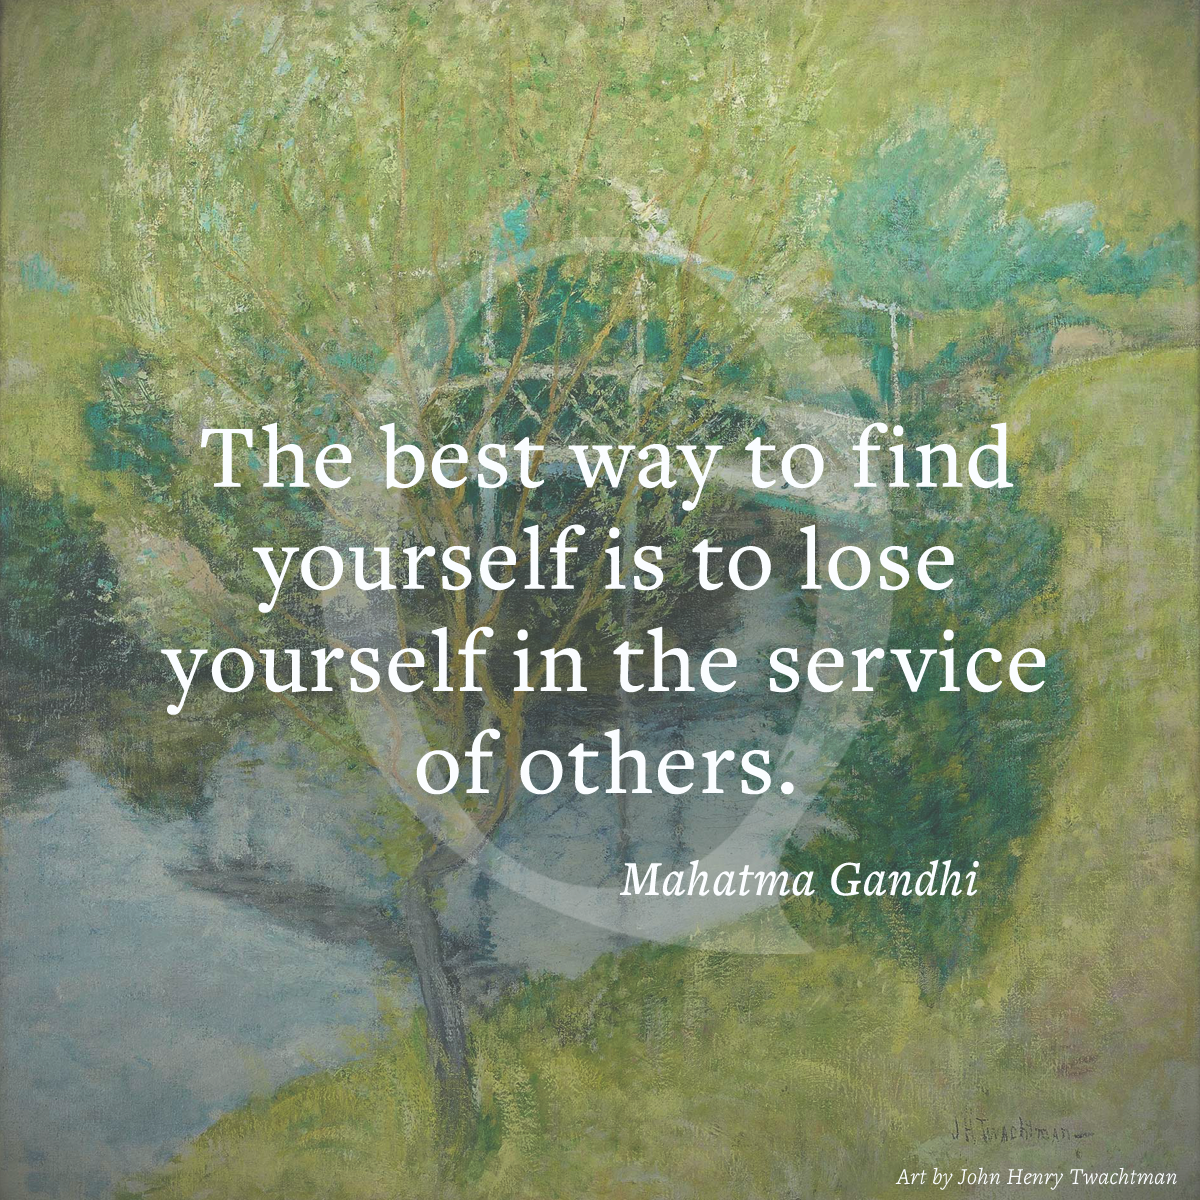 Quotes About Helping Others Best Your Best Self And Motivation May Appear When You Focus Your